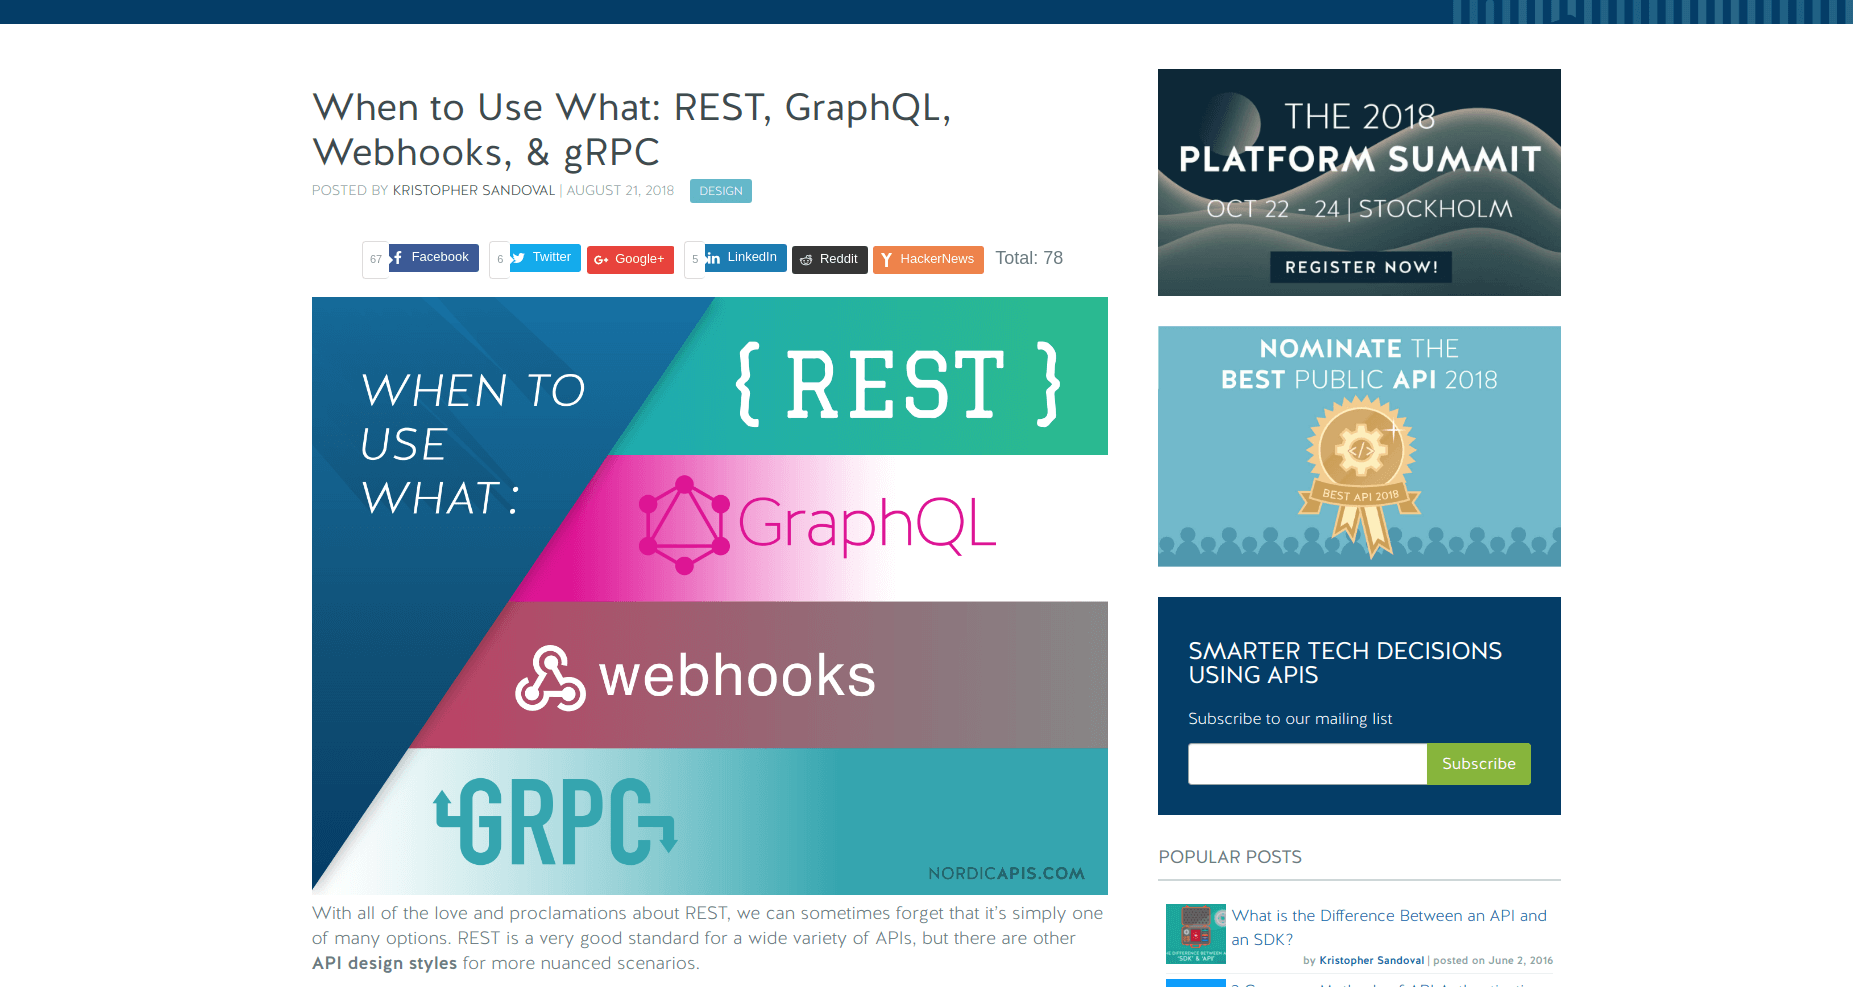 API Digest #100: When to Use What: REST, GraphQL, Webhooks, & gRPC